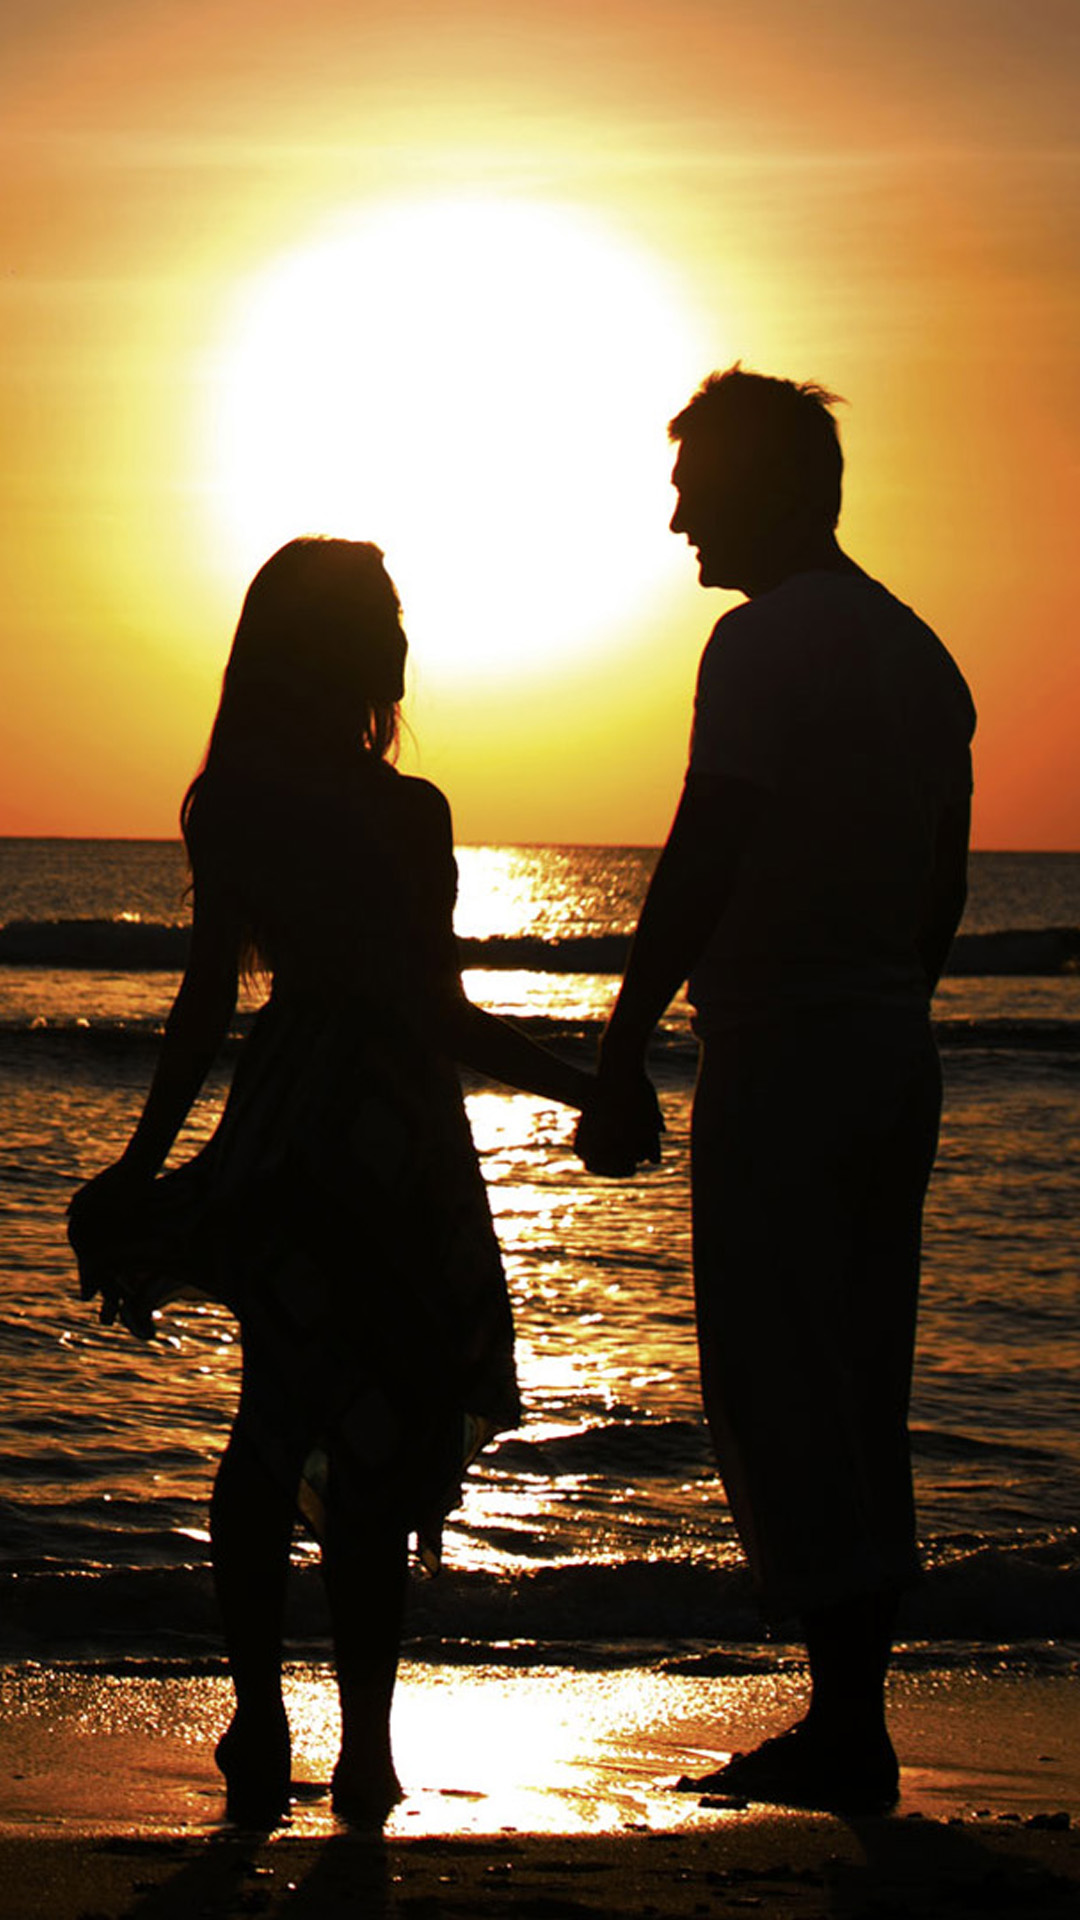 Sunset Beach Couple Android wallpaper